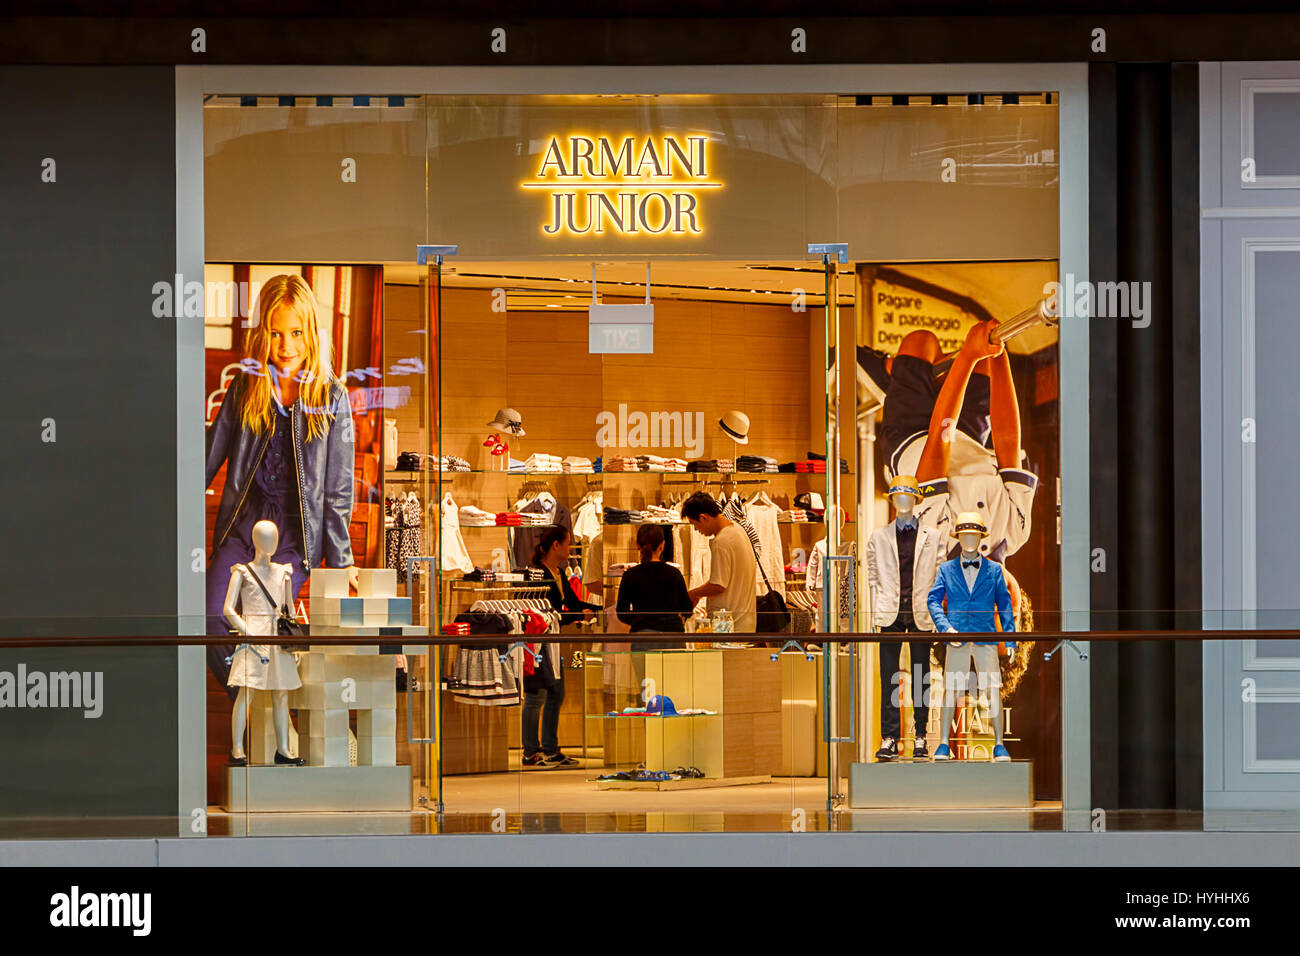 armani junior outlet